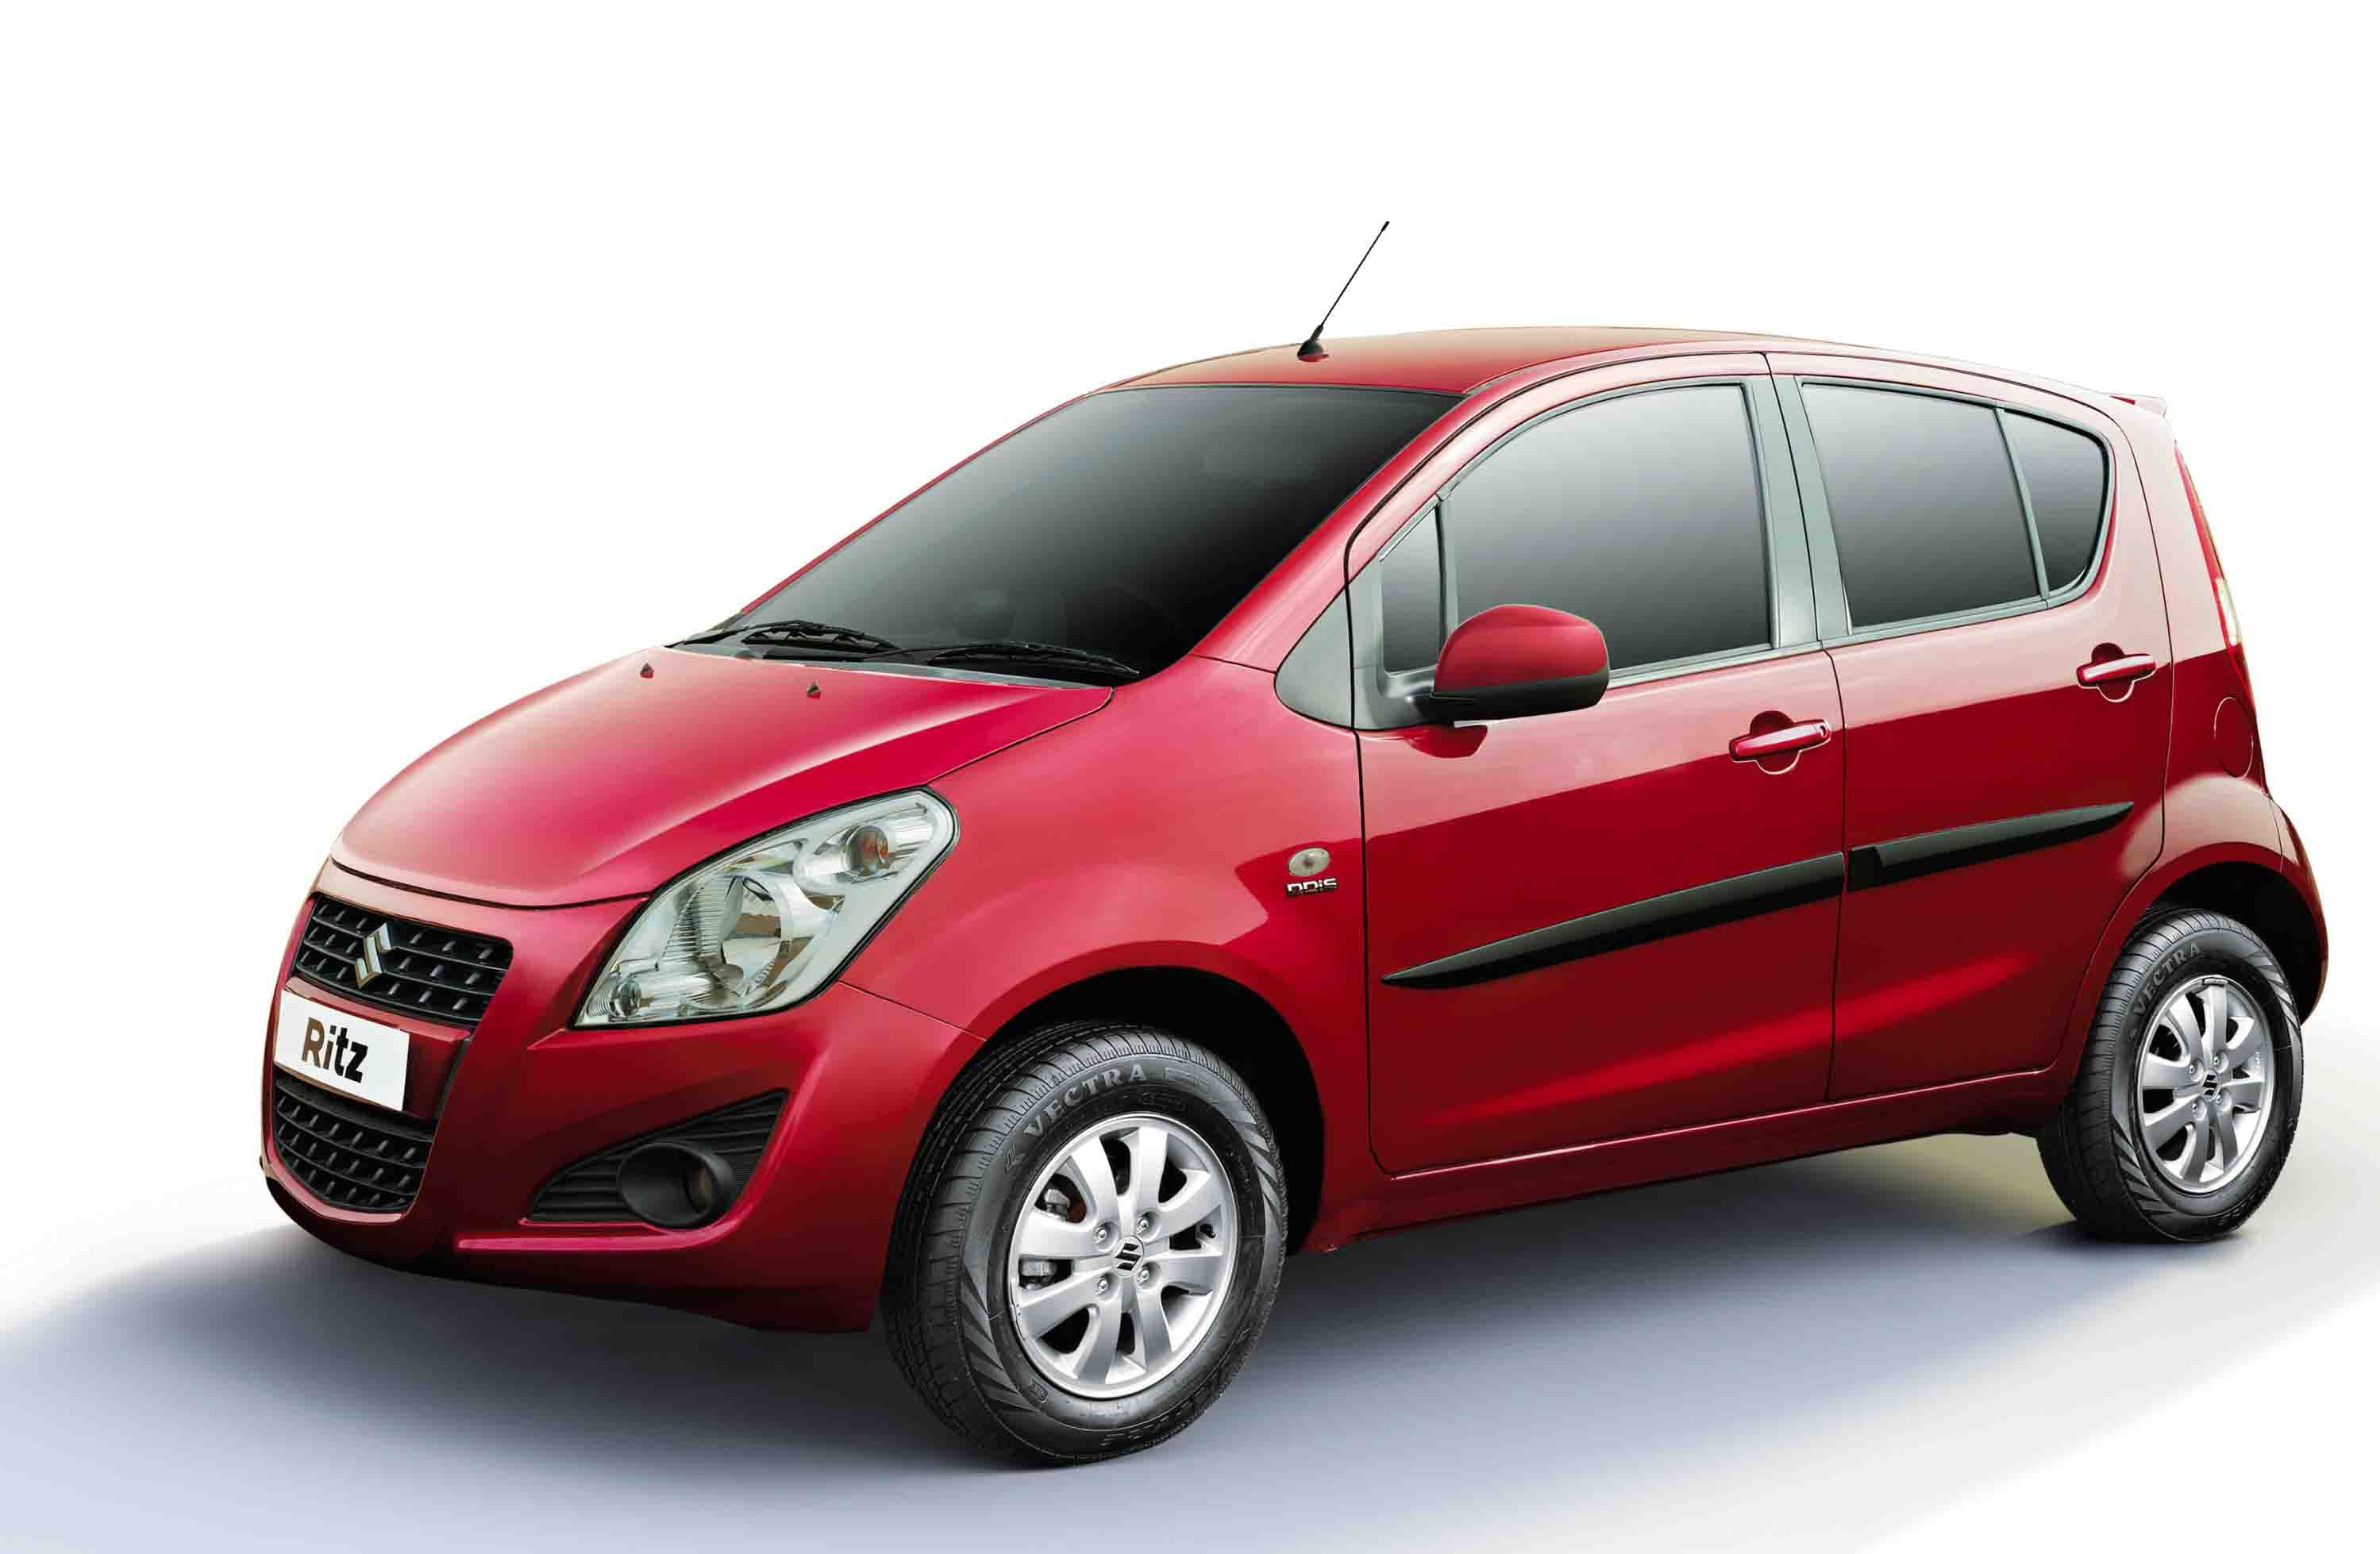 maruti-suzuki-ritz-diesel-car-in-india.jpg